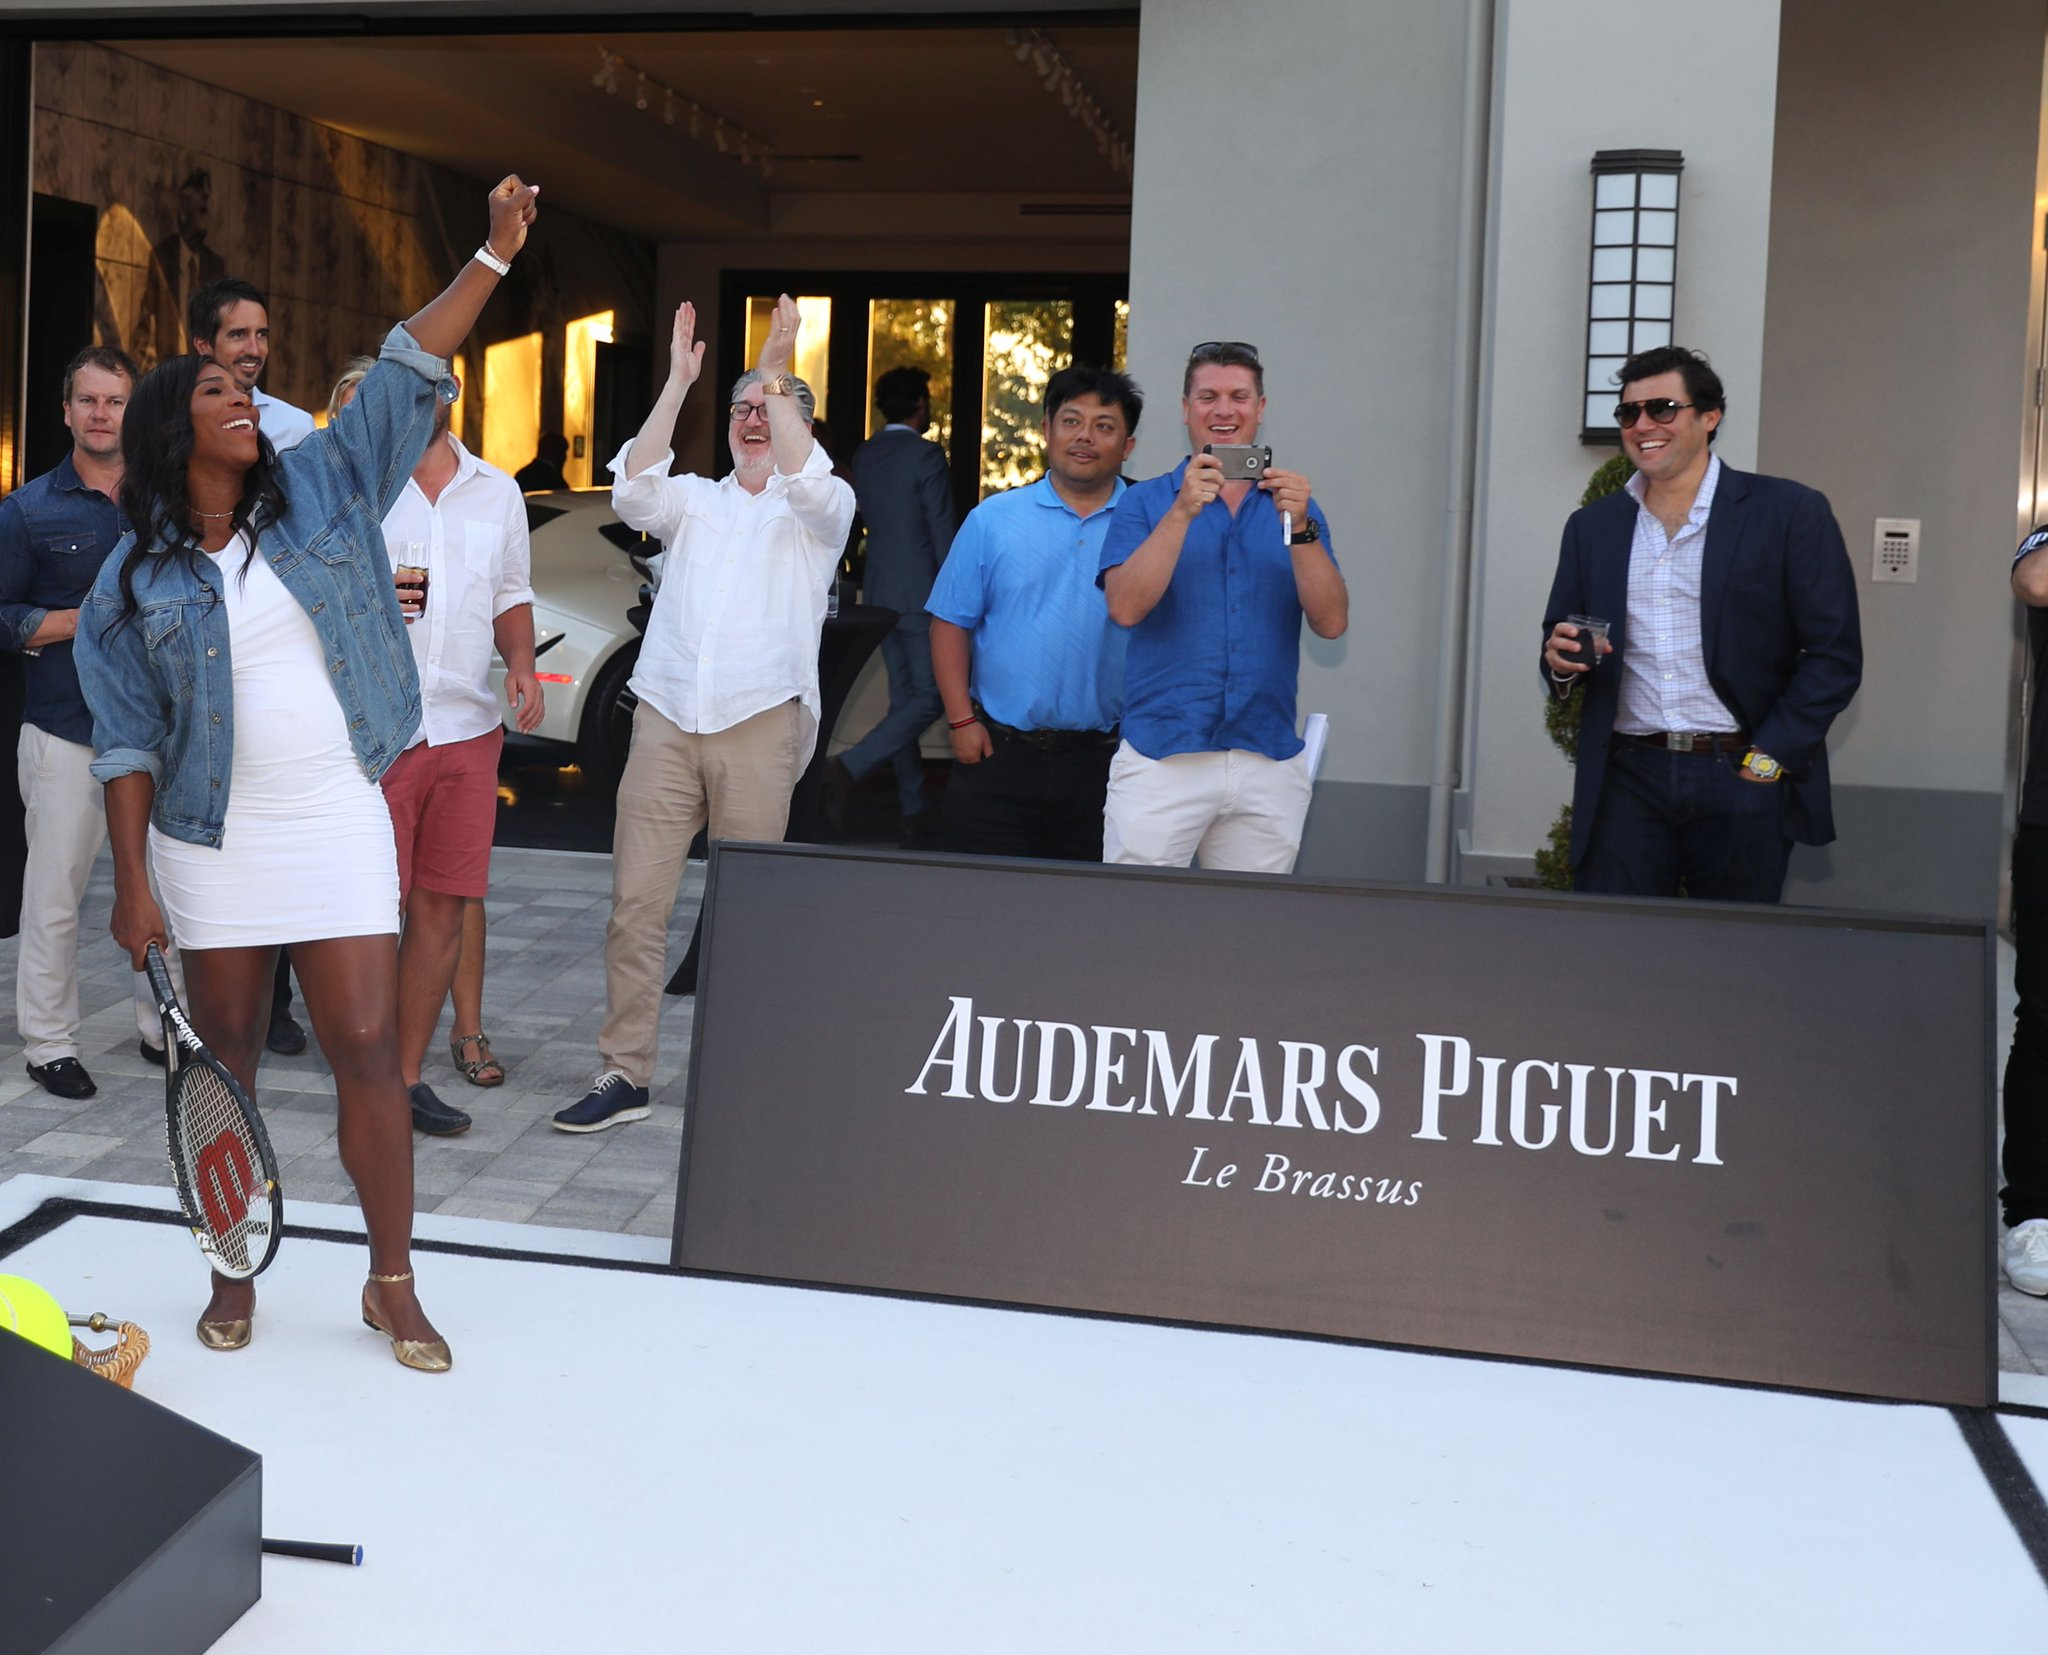 When @AudemarsPiguet and I challenged @IanJamesPoulter to show us his forehand. #APFamily https://t.co/Bx3TLaAGCI